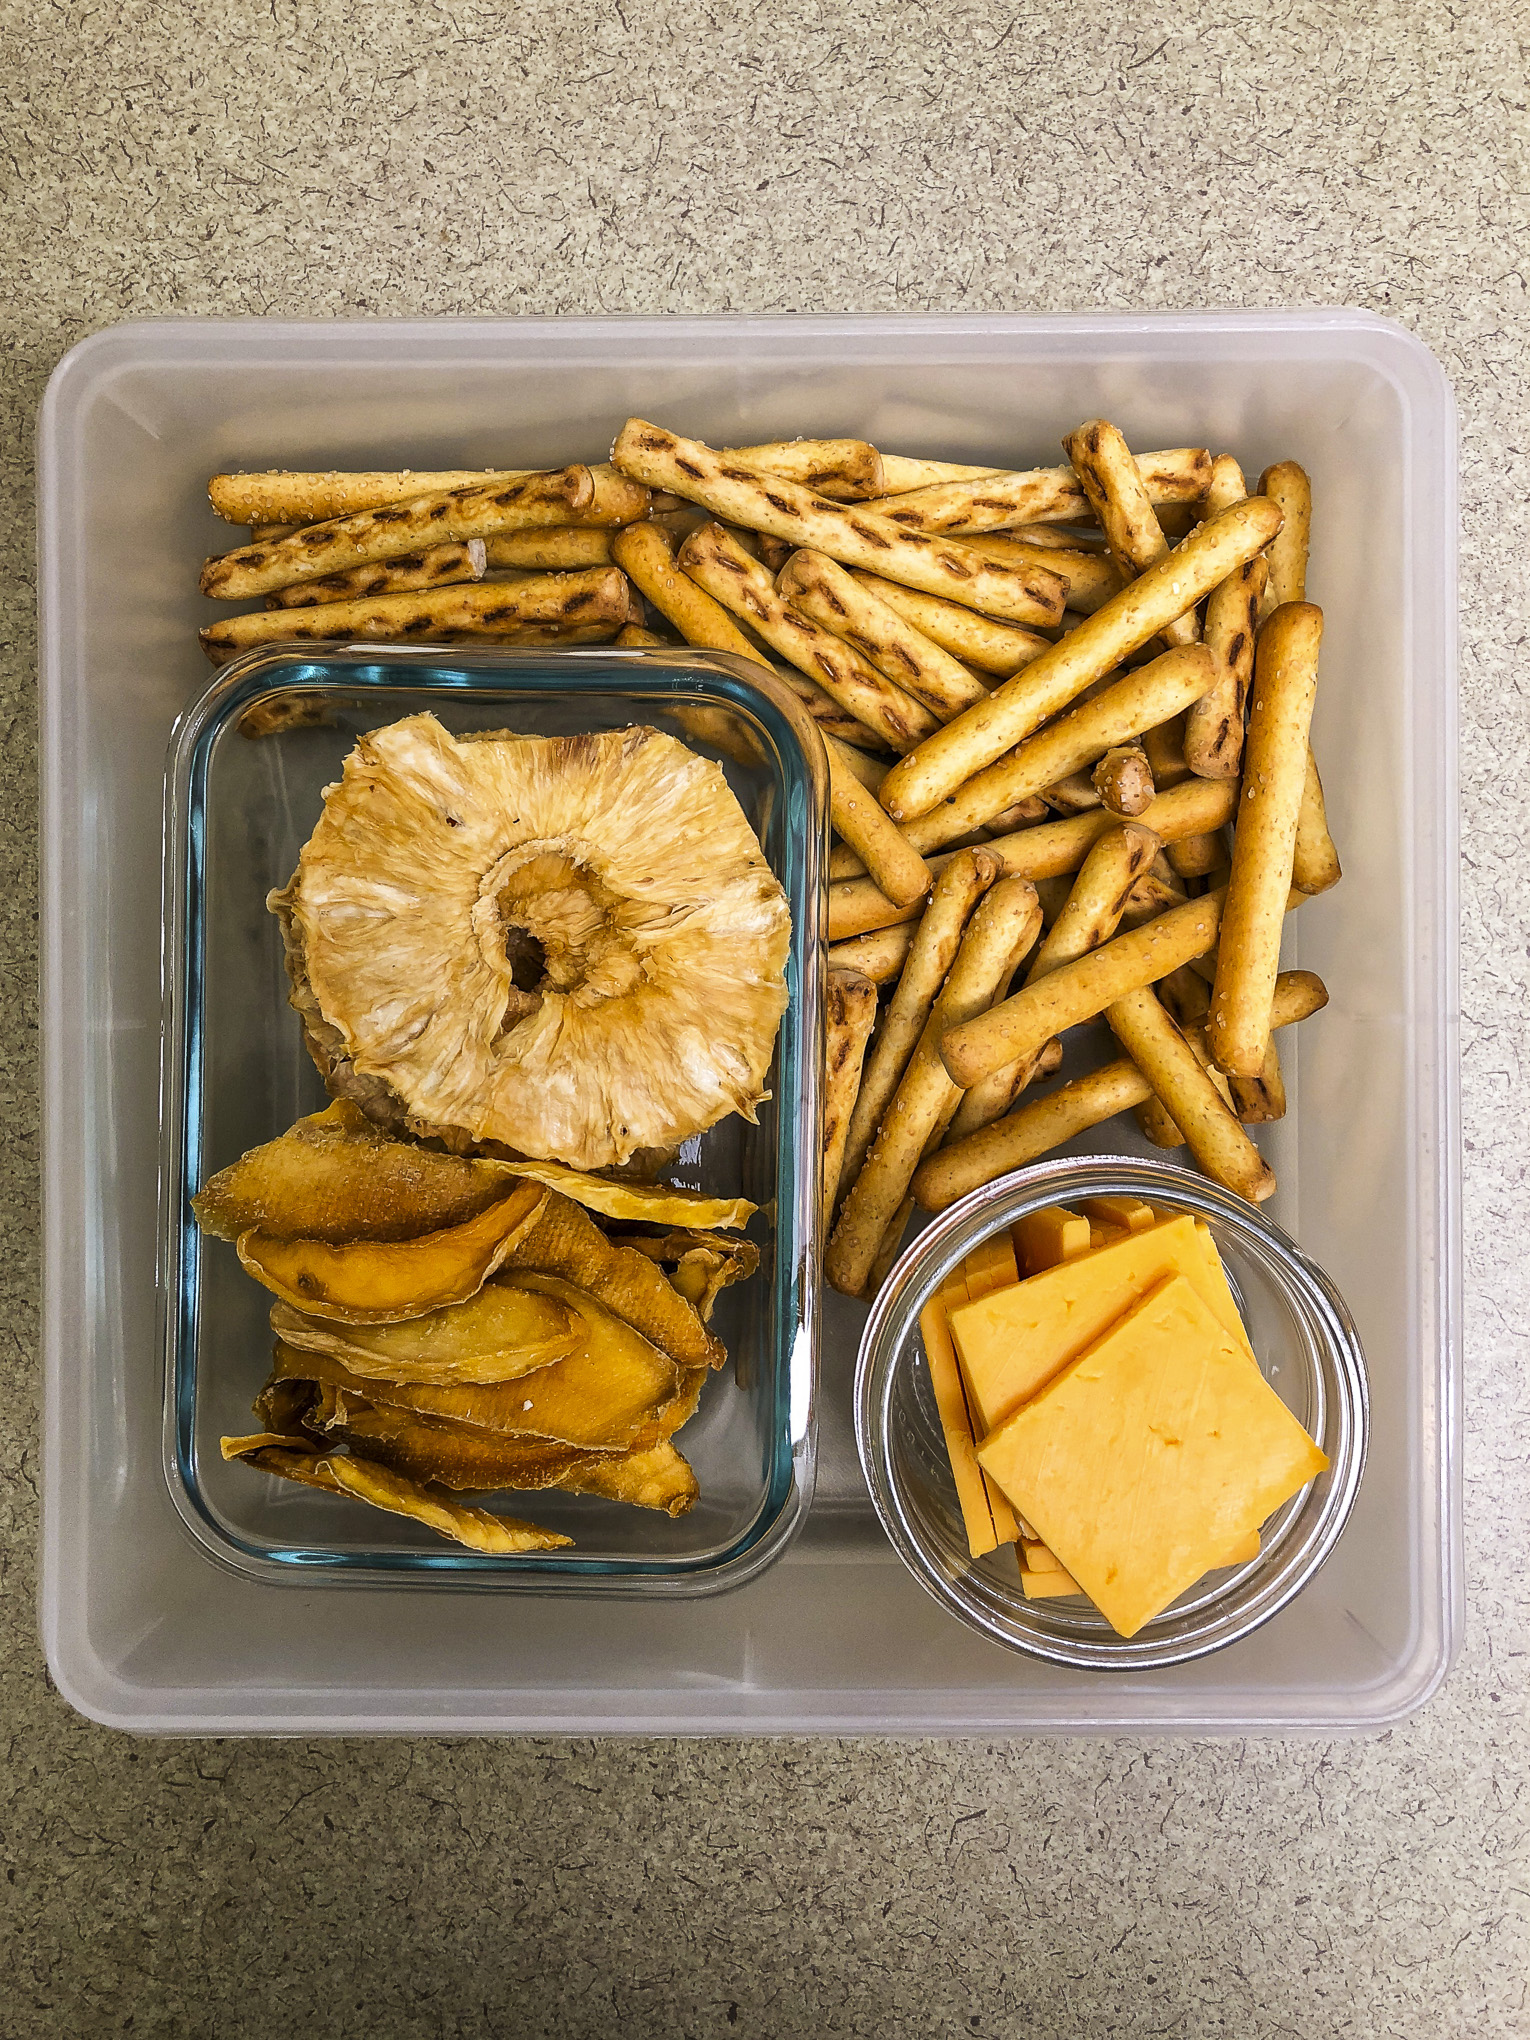 Tupperware filled with pretzels, cheese, dried pineapple and dried mango